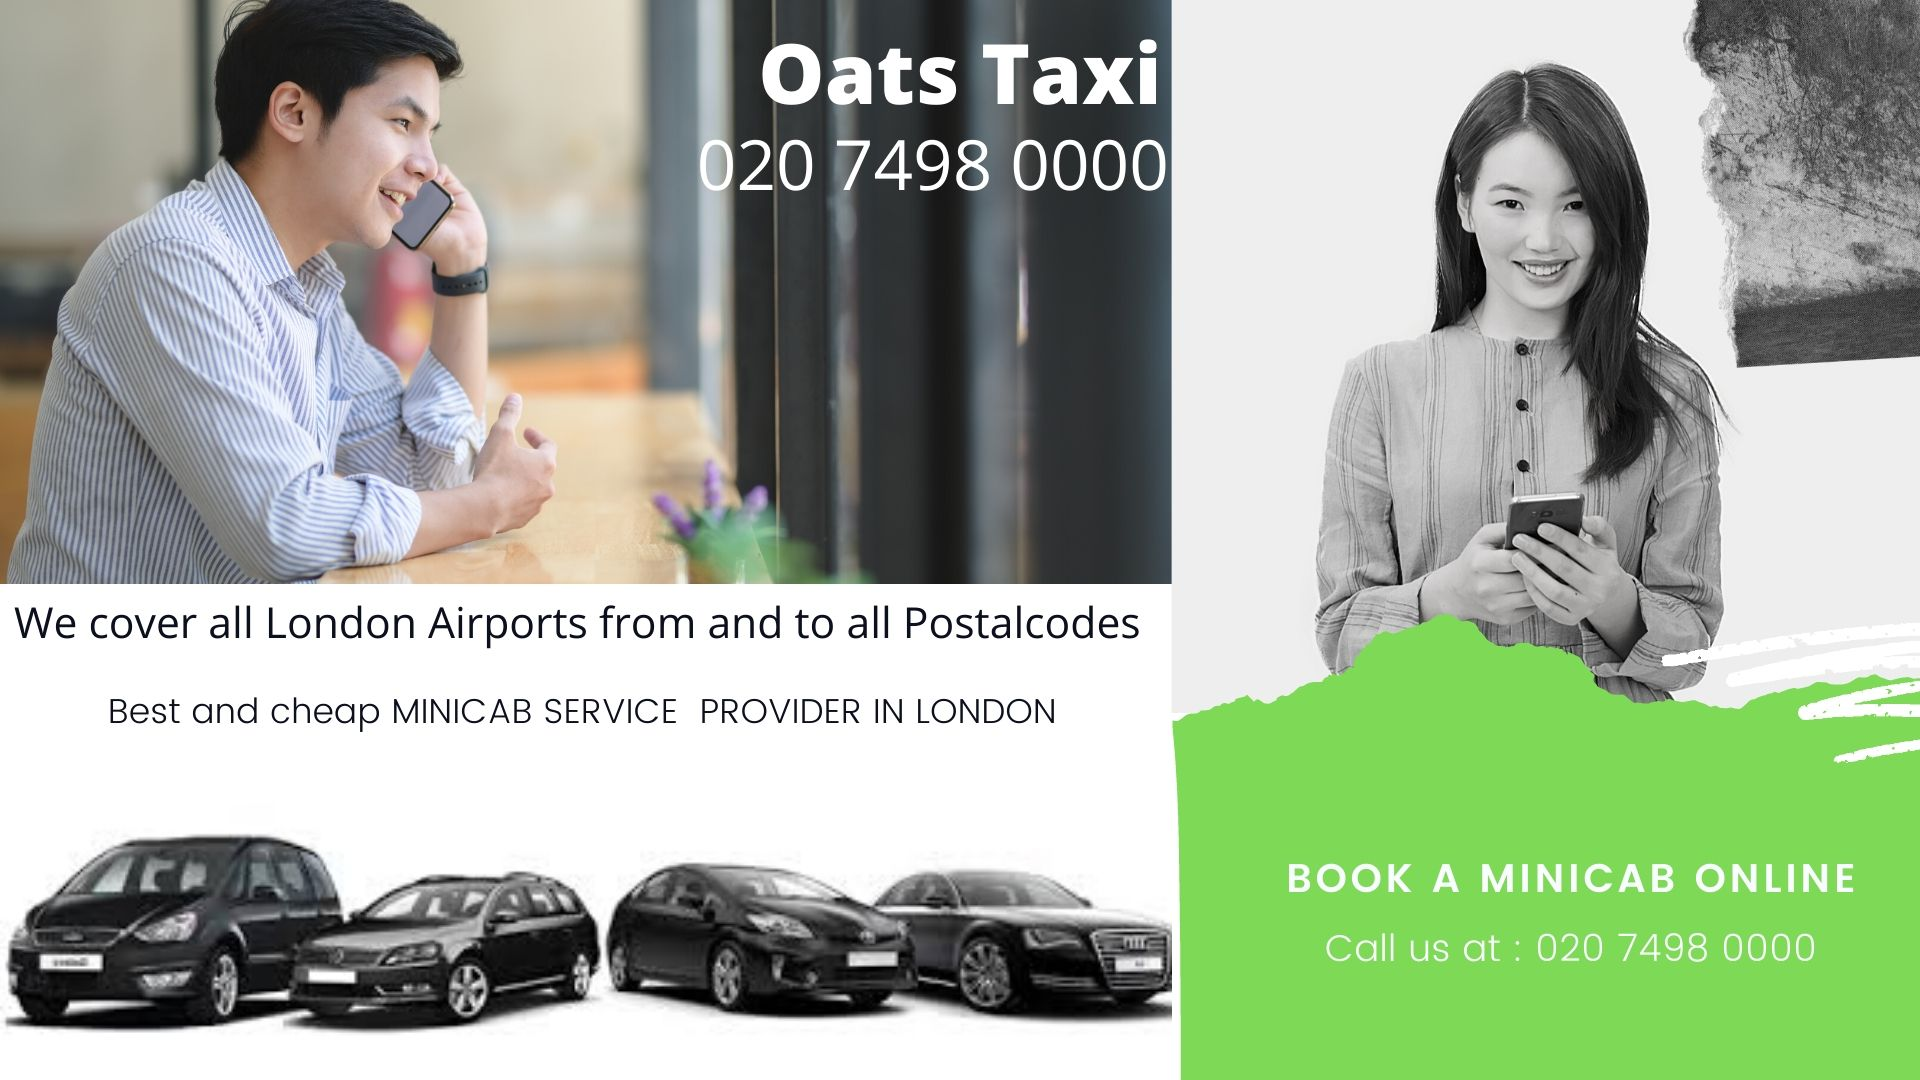 Nearest Minicab Office in Gunnersbury | Minicab Gatwick Airport | Call now : 02074980000